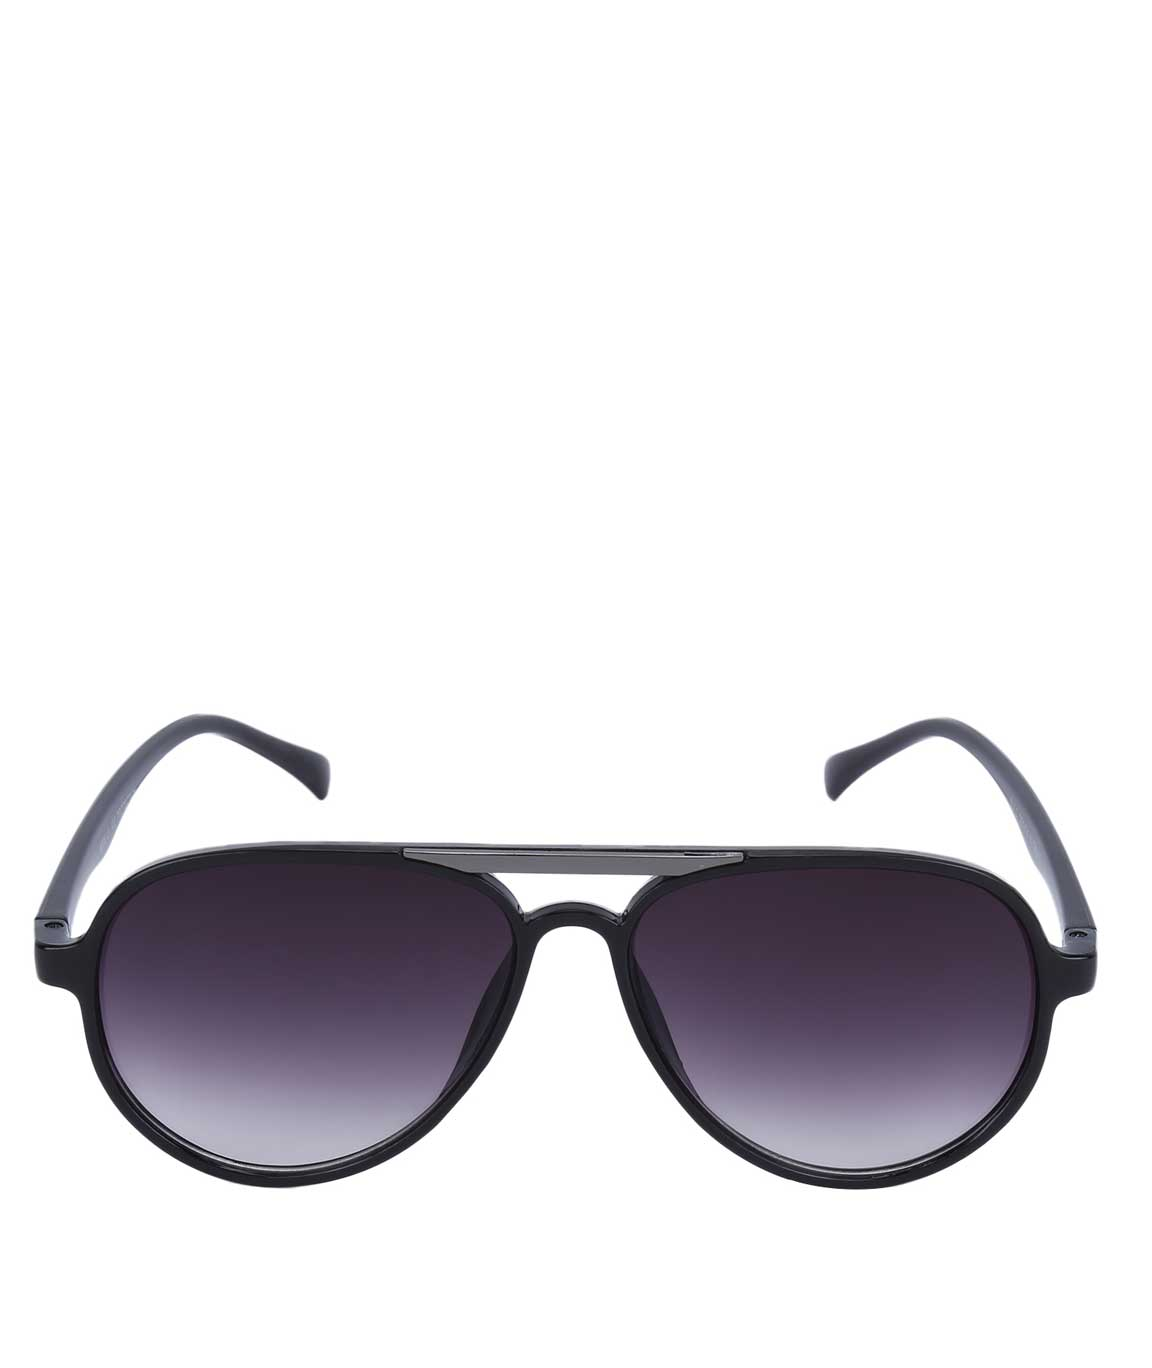 EXCLUSIVE IKING SUNGLASSES 1